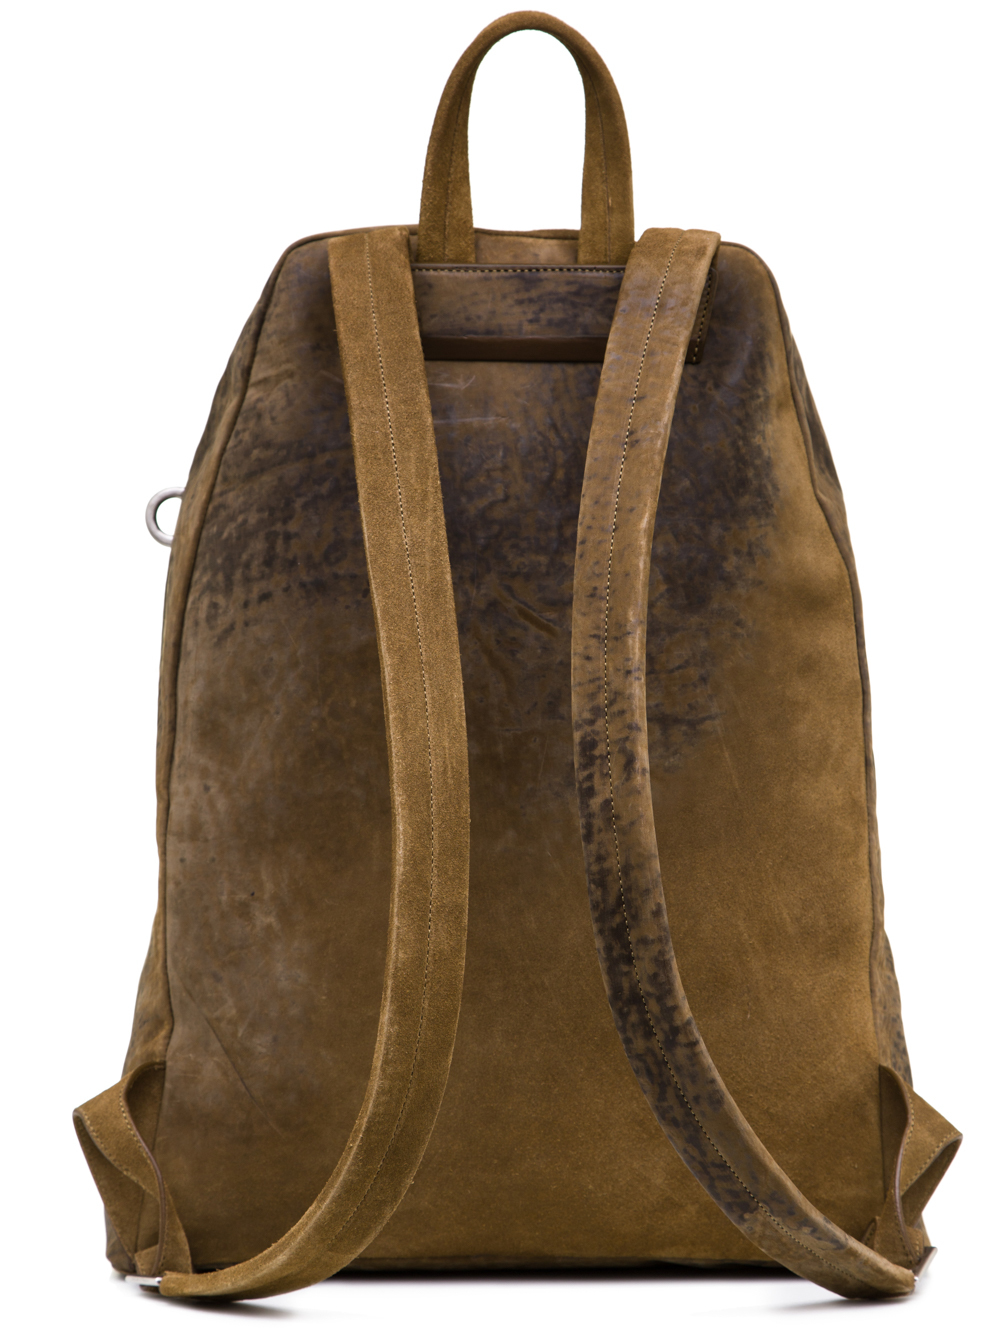 RICK OWENS SS19 BABEL BACKPACK IN MUSTARD GREEN LEATHER